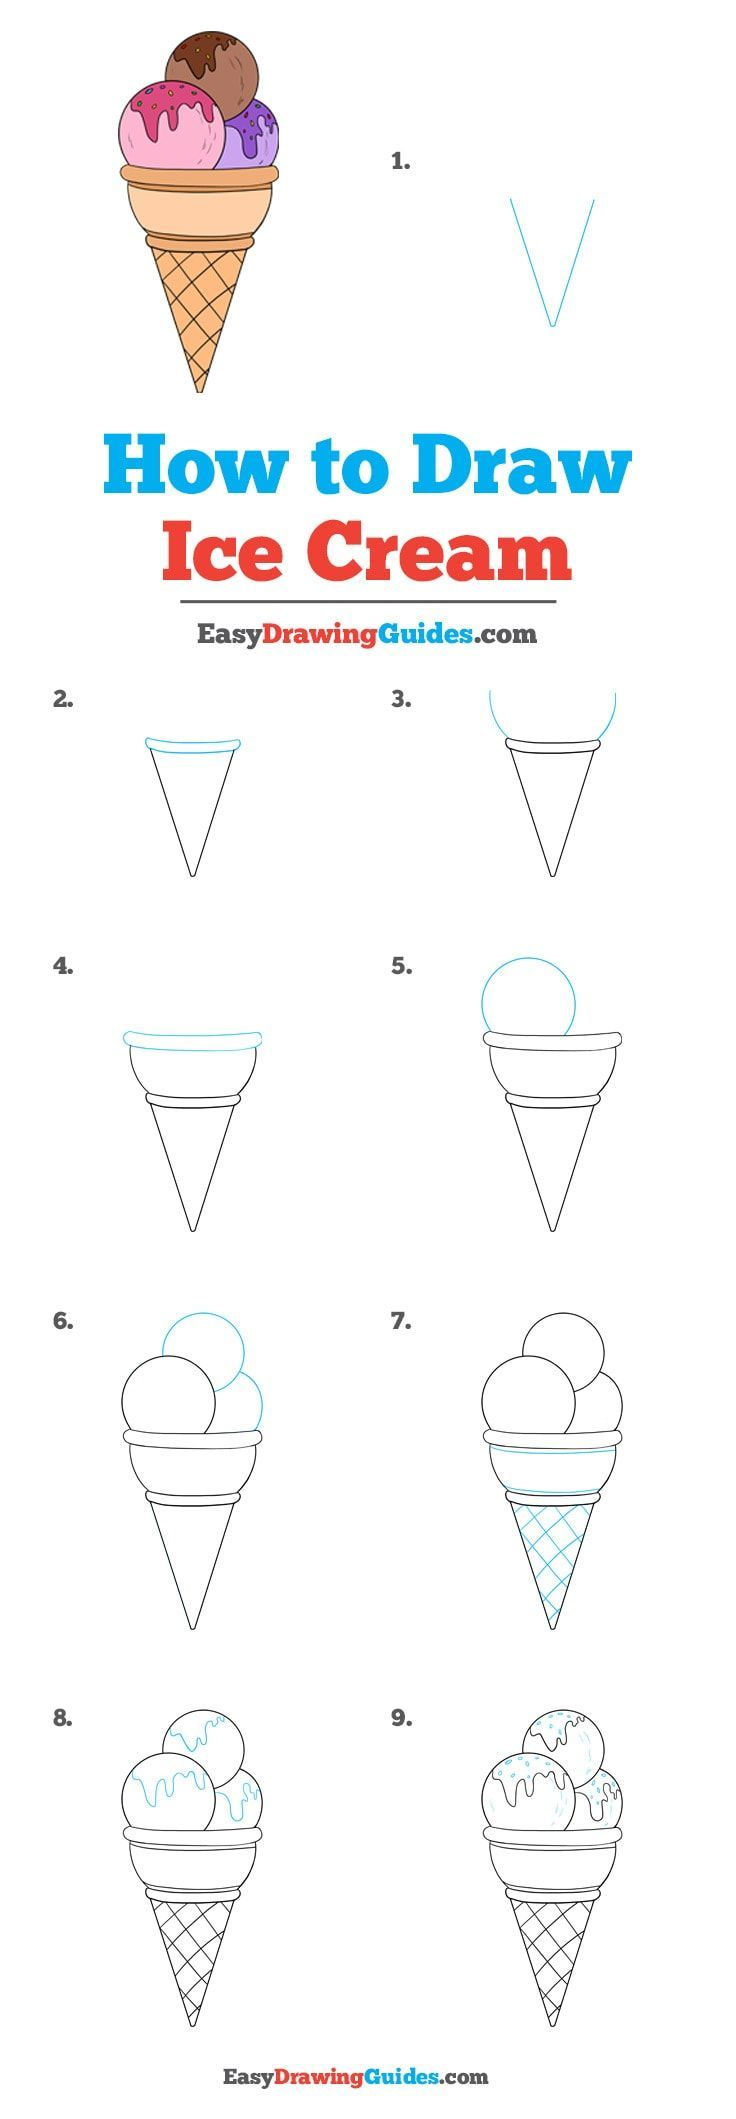 How To Draw Ice Cream - Really Easy Drawing Tutorial